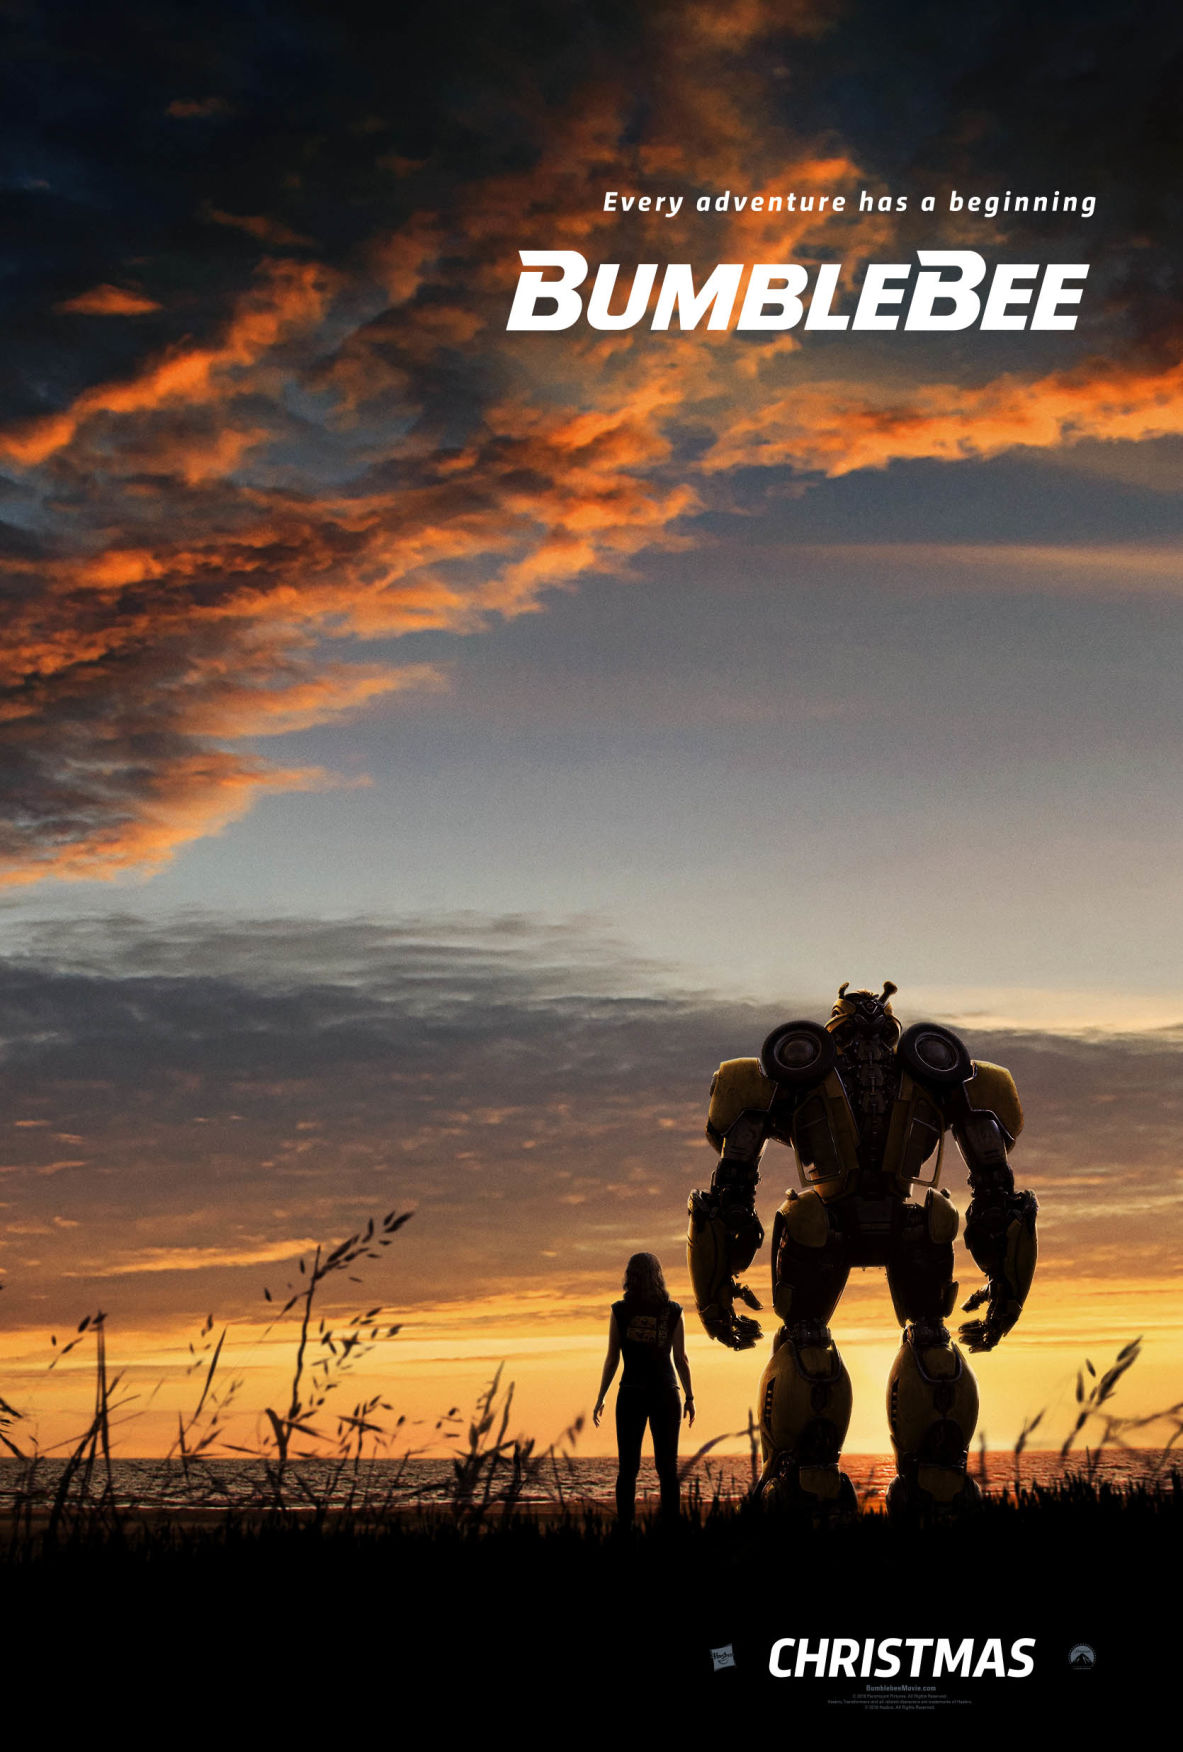 'Bumblebee' is perfect 'Transformers' prequel